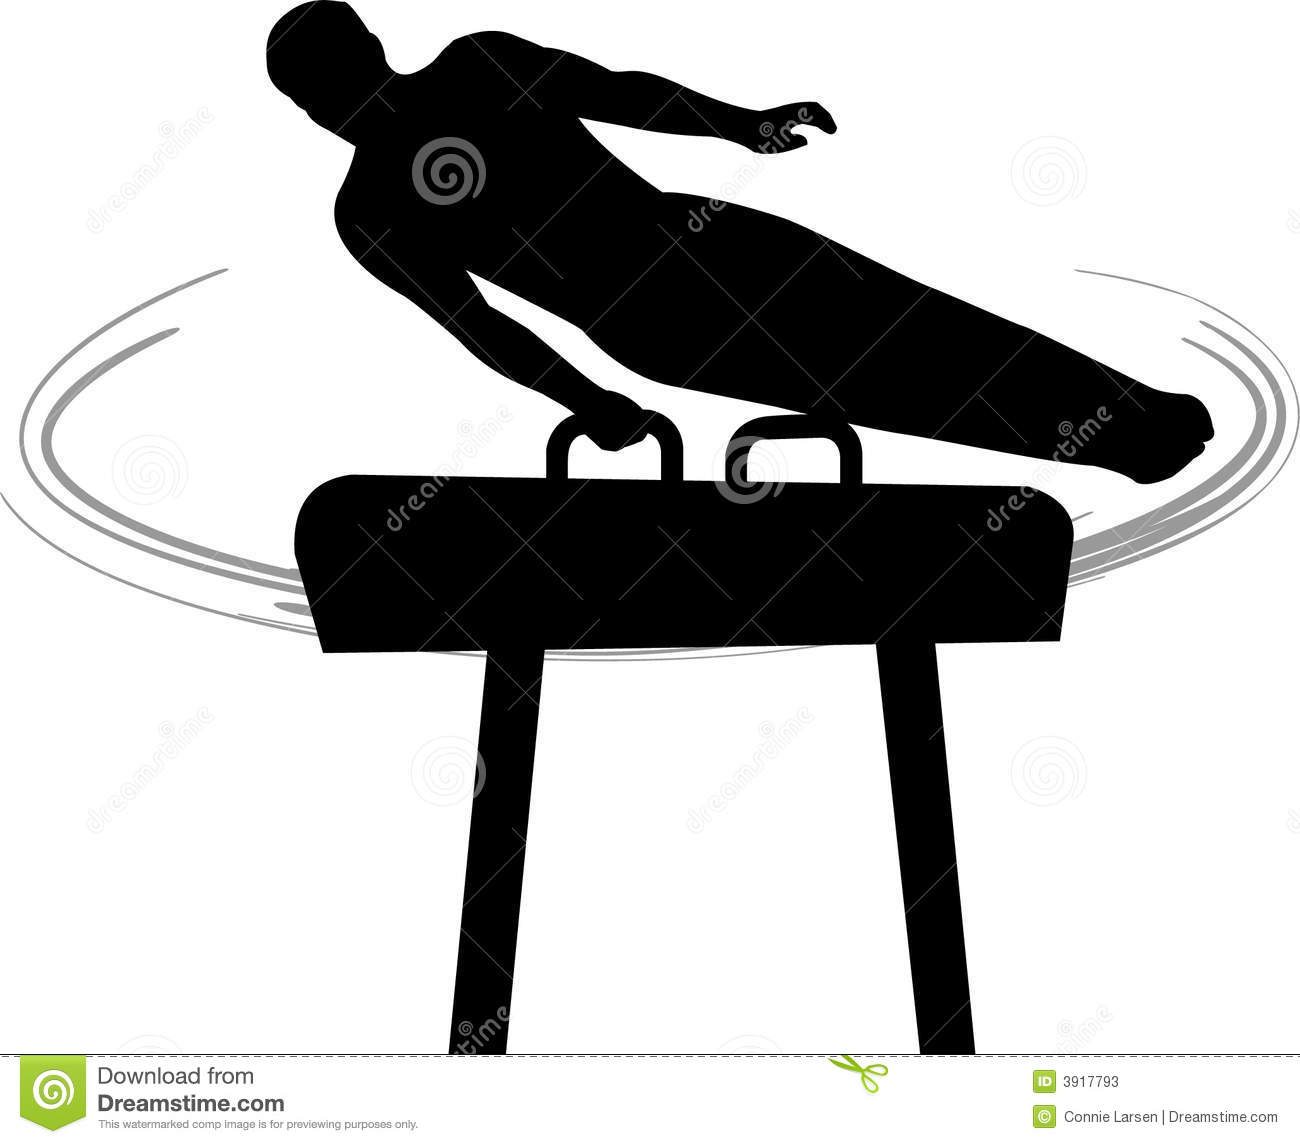 Silhouette Illustration Of A Male Gymnast Performing A Routine On The